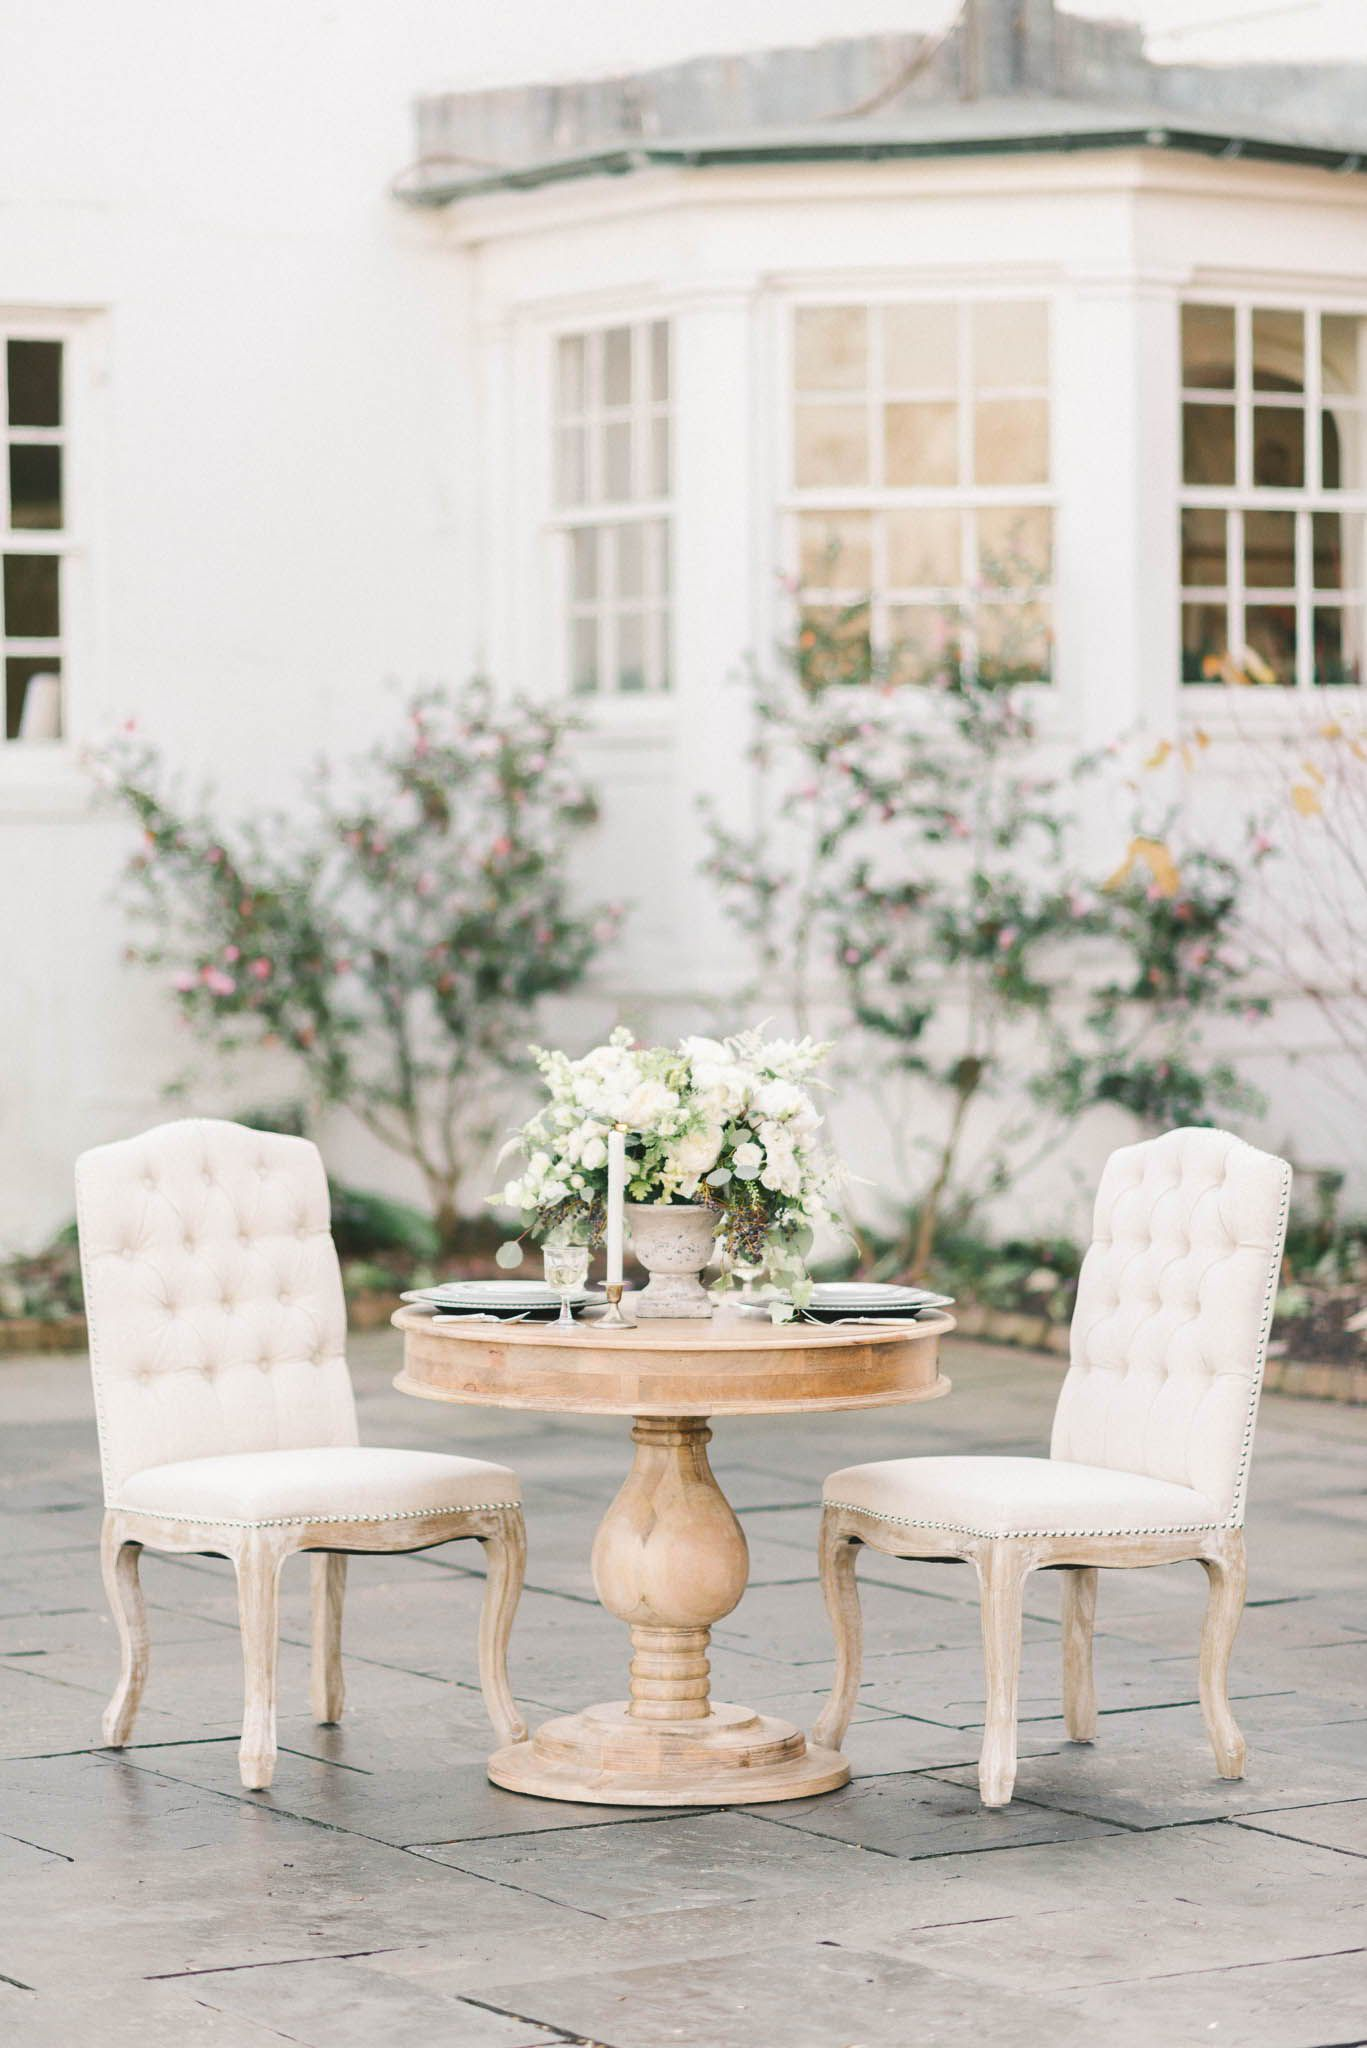 chair cover rentals alexandria va kd smart uk ethereal wedding sweetheart seating inspiration white glove photography elizabeth fogarty flowers floral and bloom planning the velvet veil venue river farm in